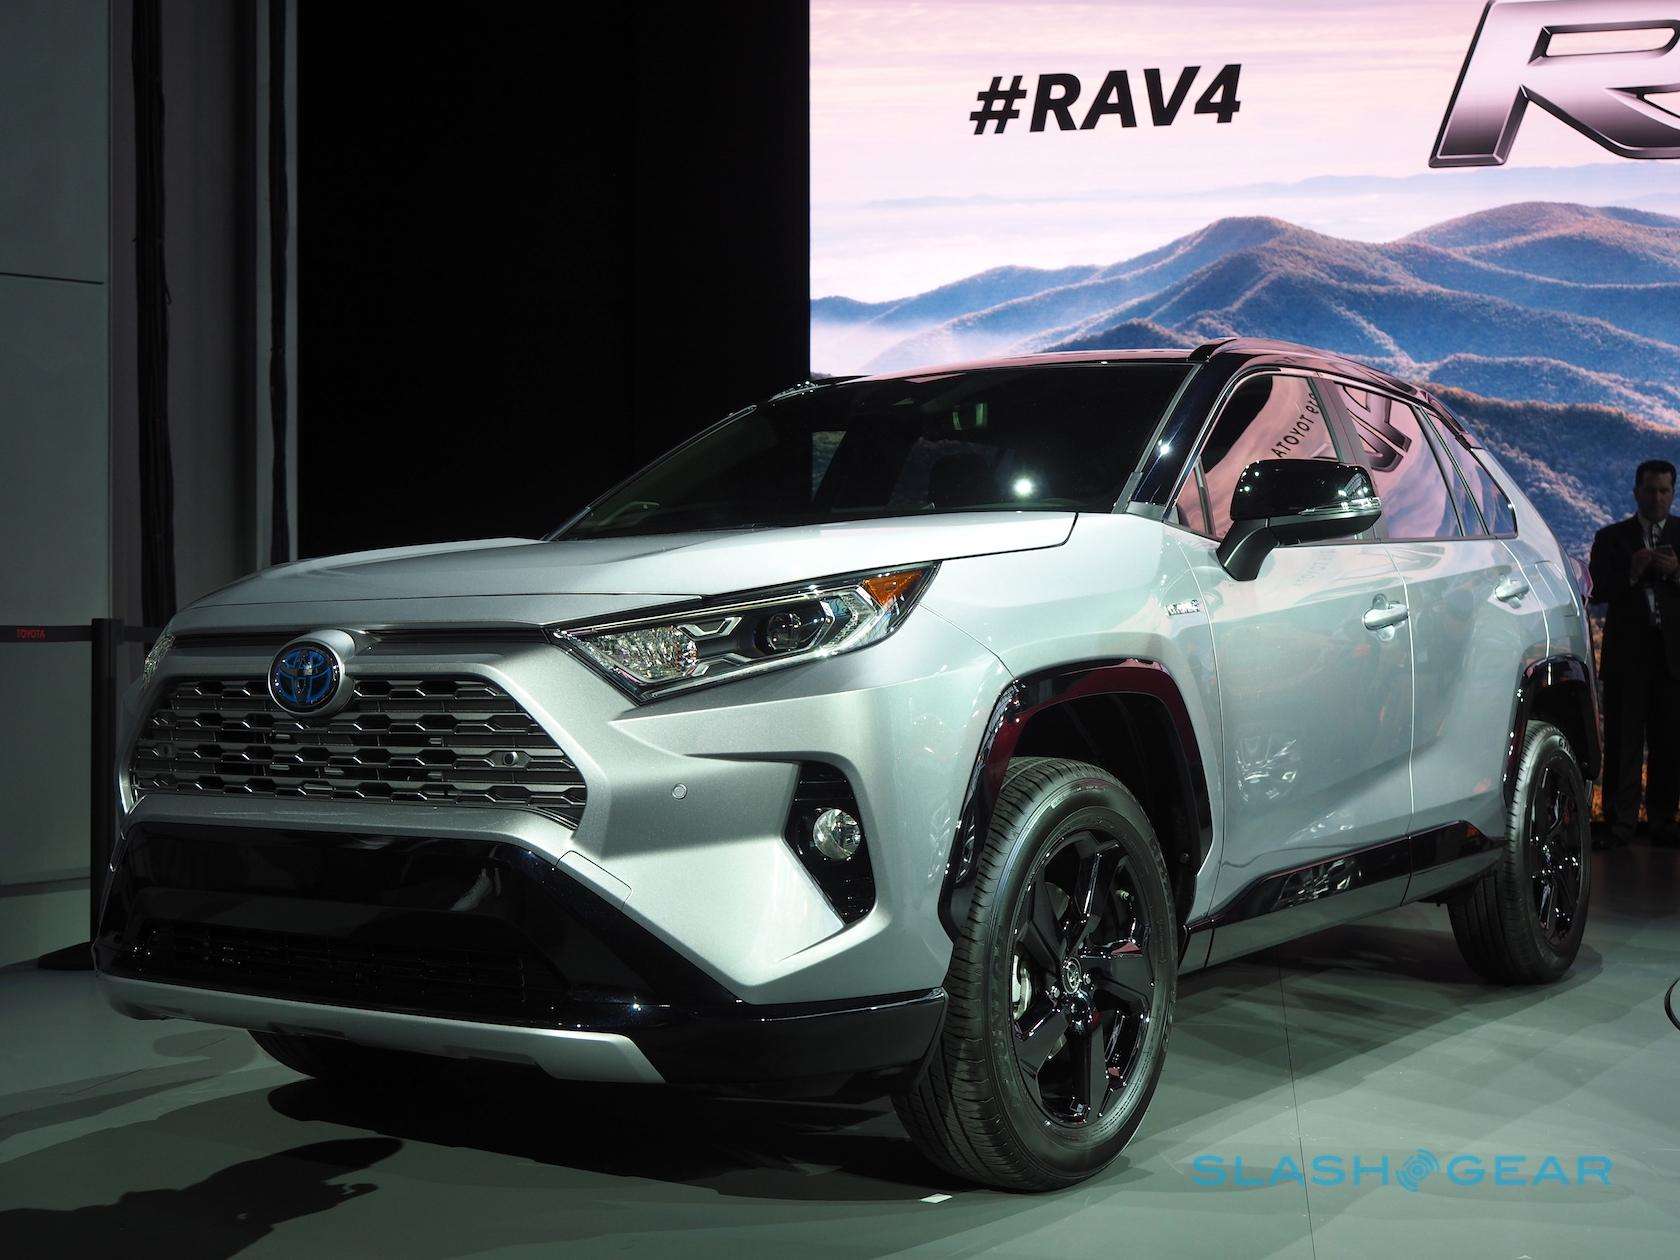 The 2019 Rav4 Limited Meanwhile Gets 19 Inch Alloy Wheels And Chrome Accents On Exterior To Give It A More Upscale Look Digital Rearview